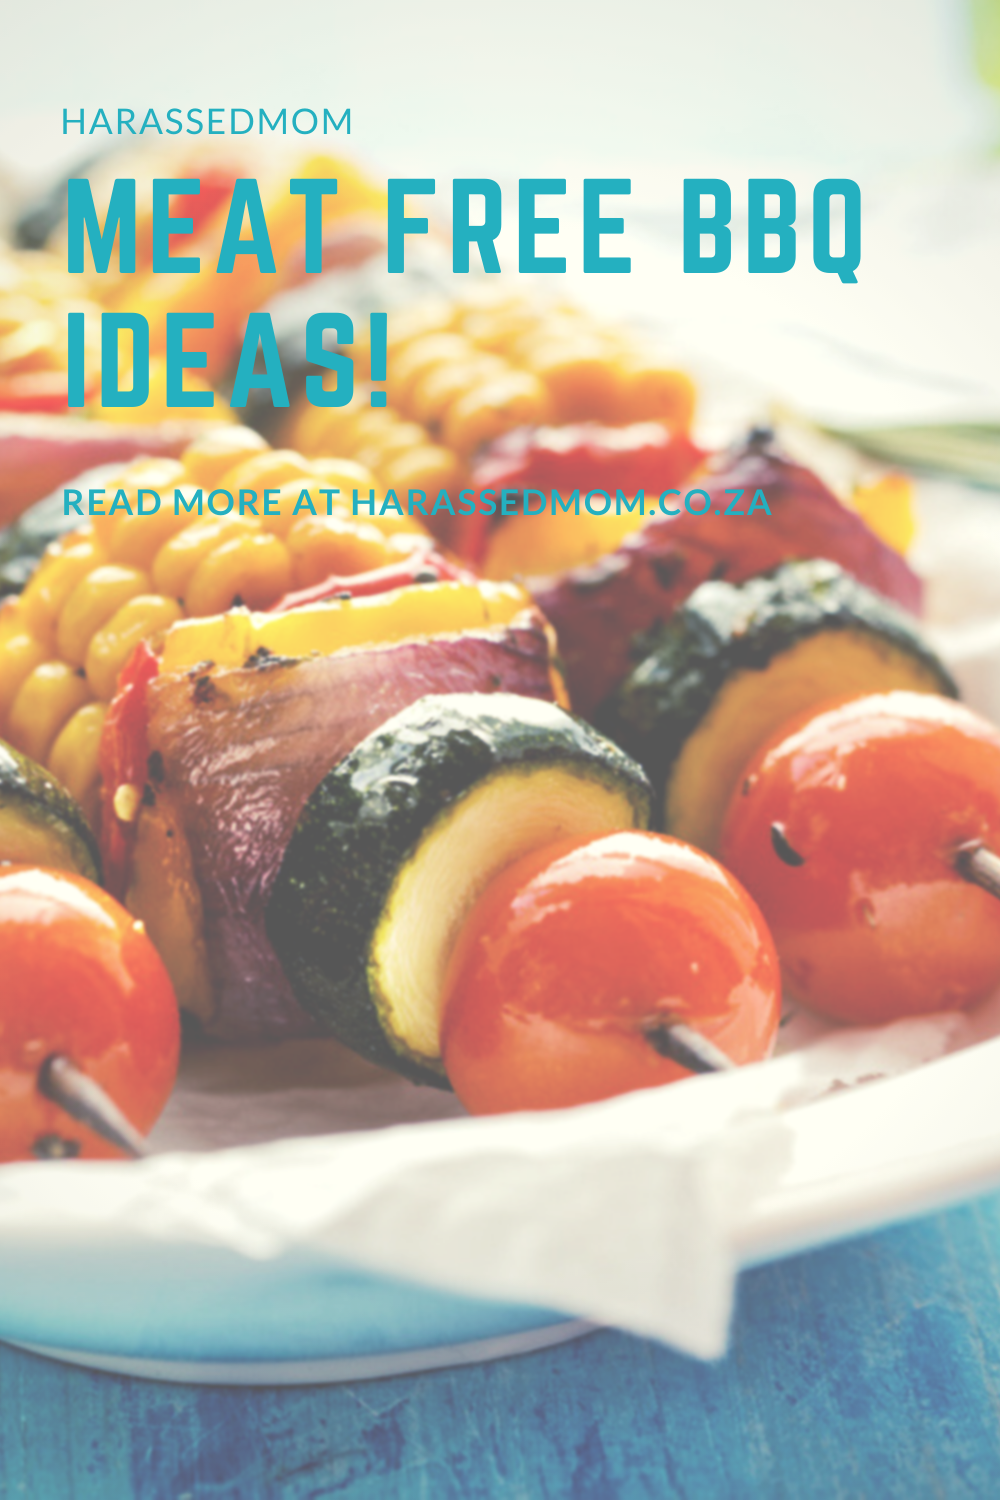 Meat free BBQ options! Enjoy your BBQ with these delicious meat free options.